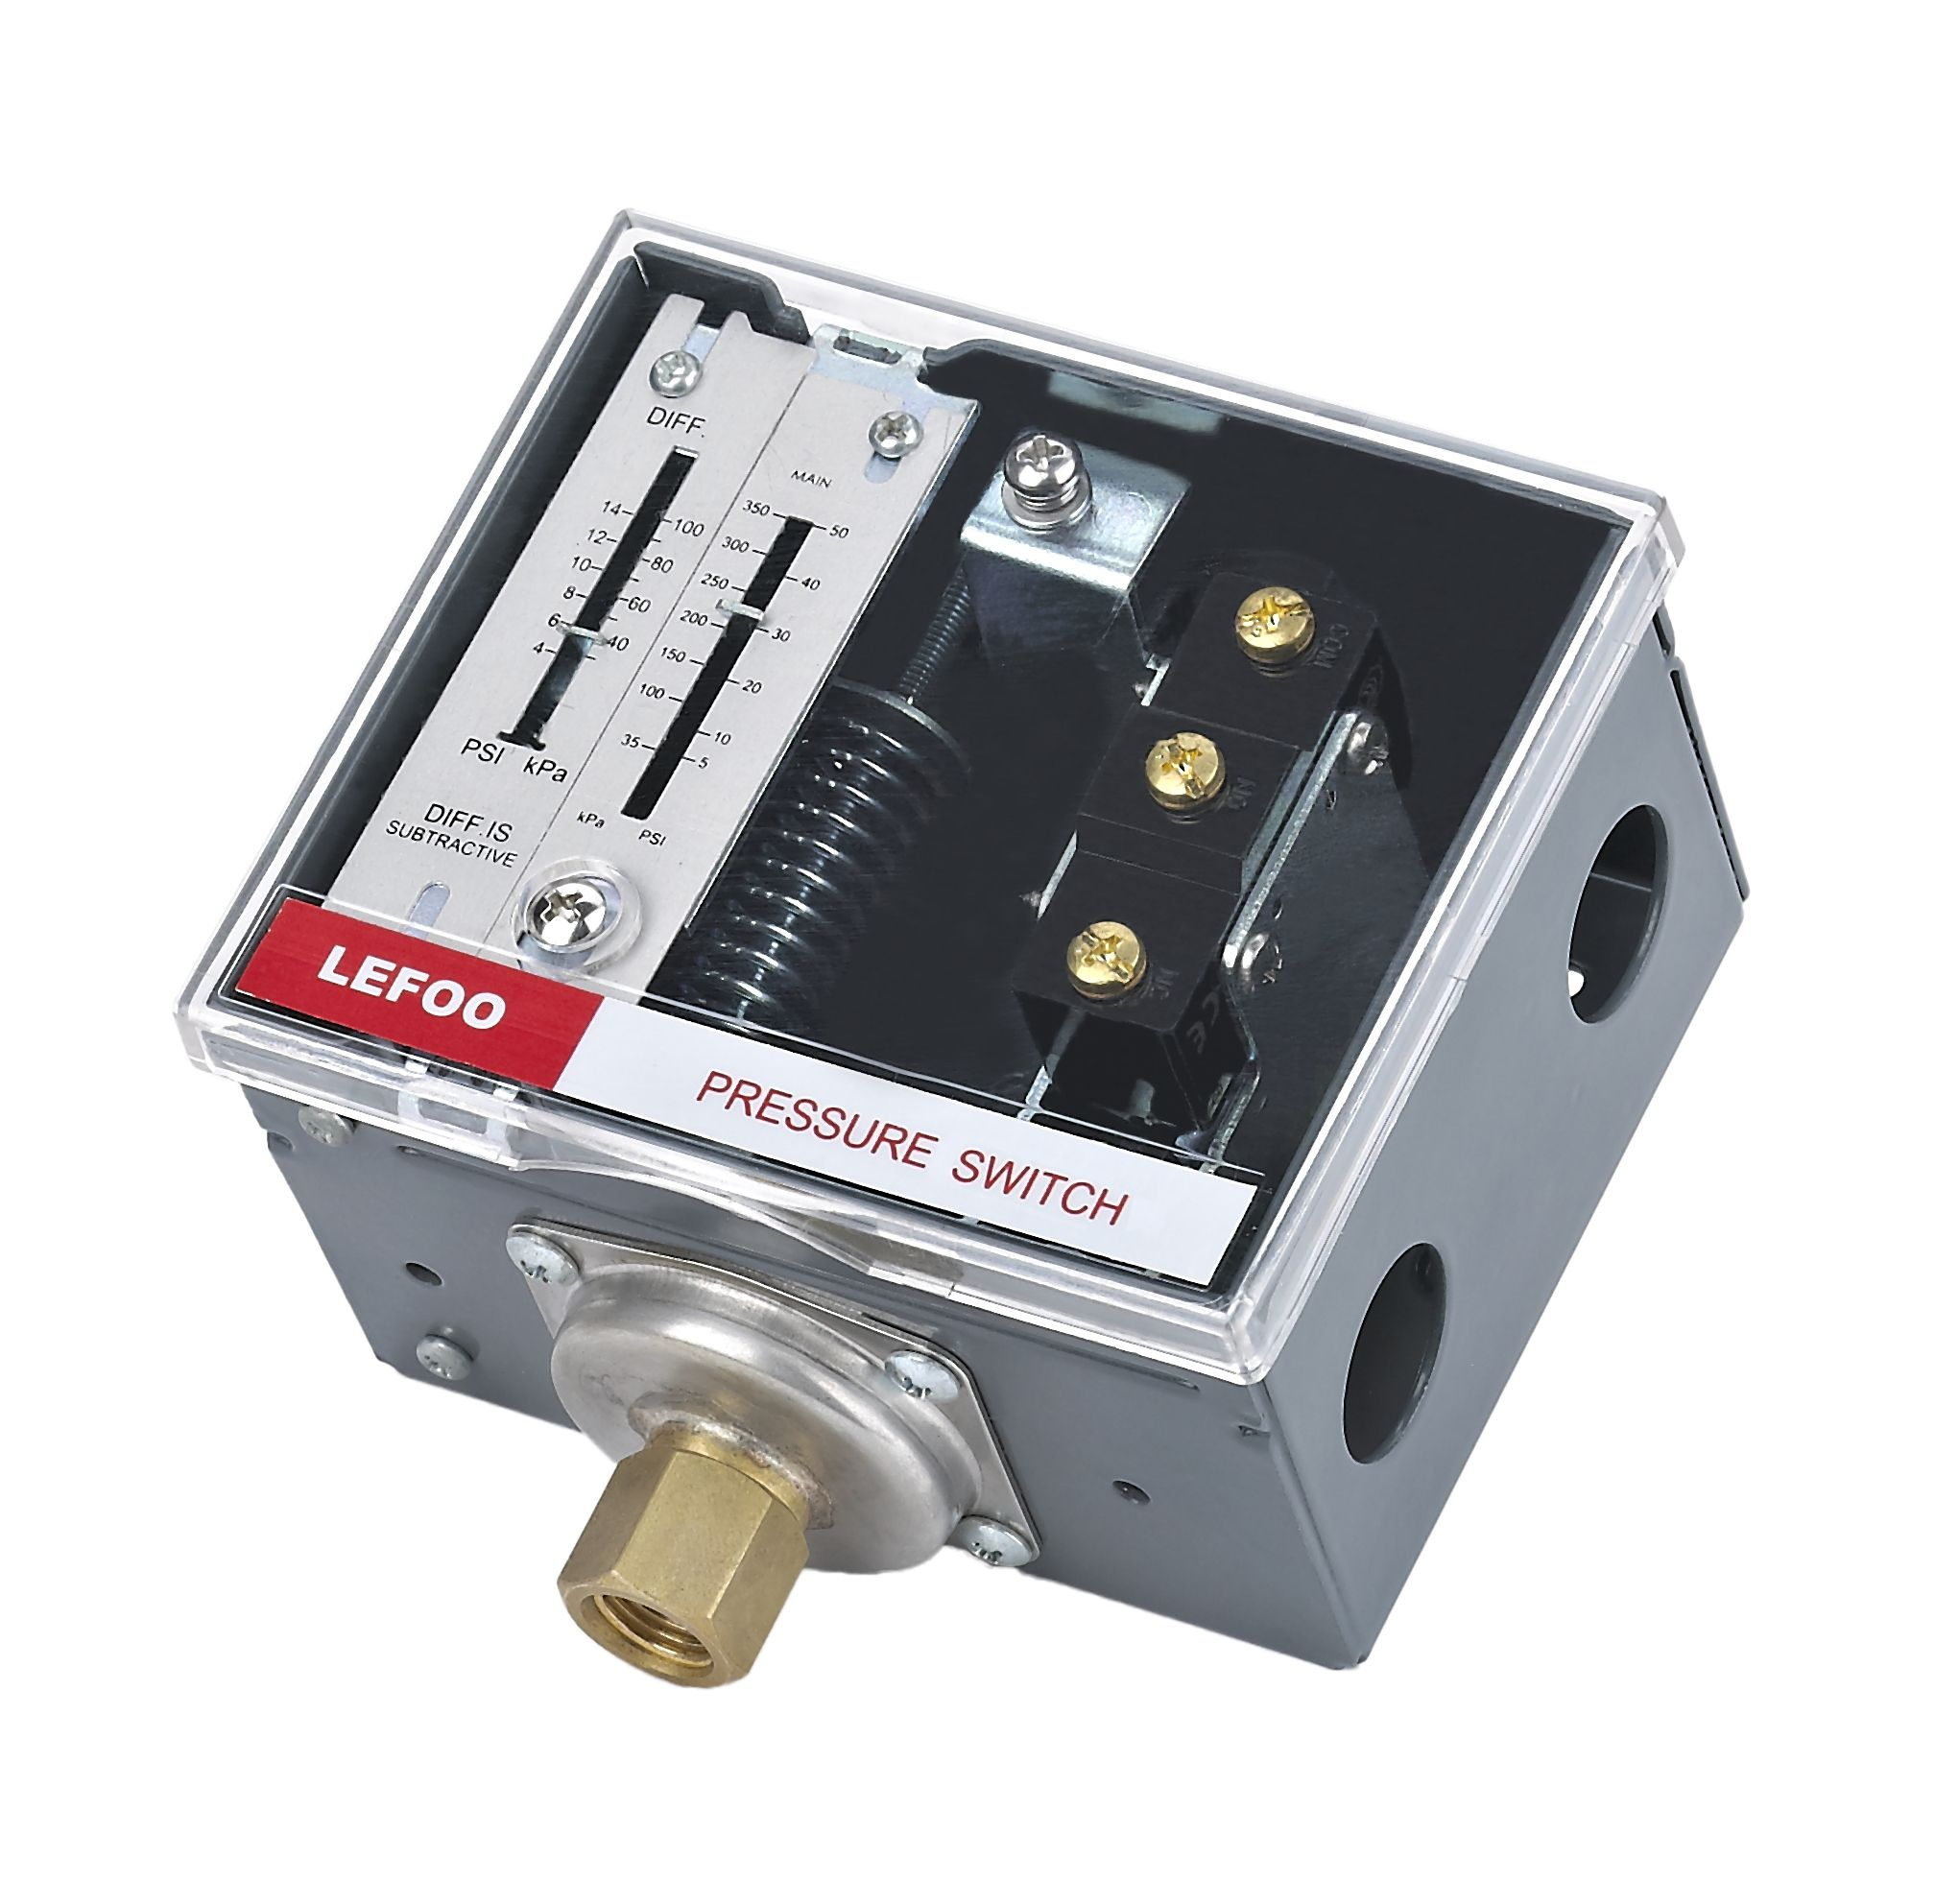 LEFOO LF56 Steam Boiler pressure switch for boiler or water tower, Differential pressure adjustable pressure controller